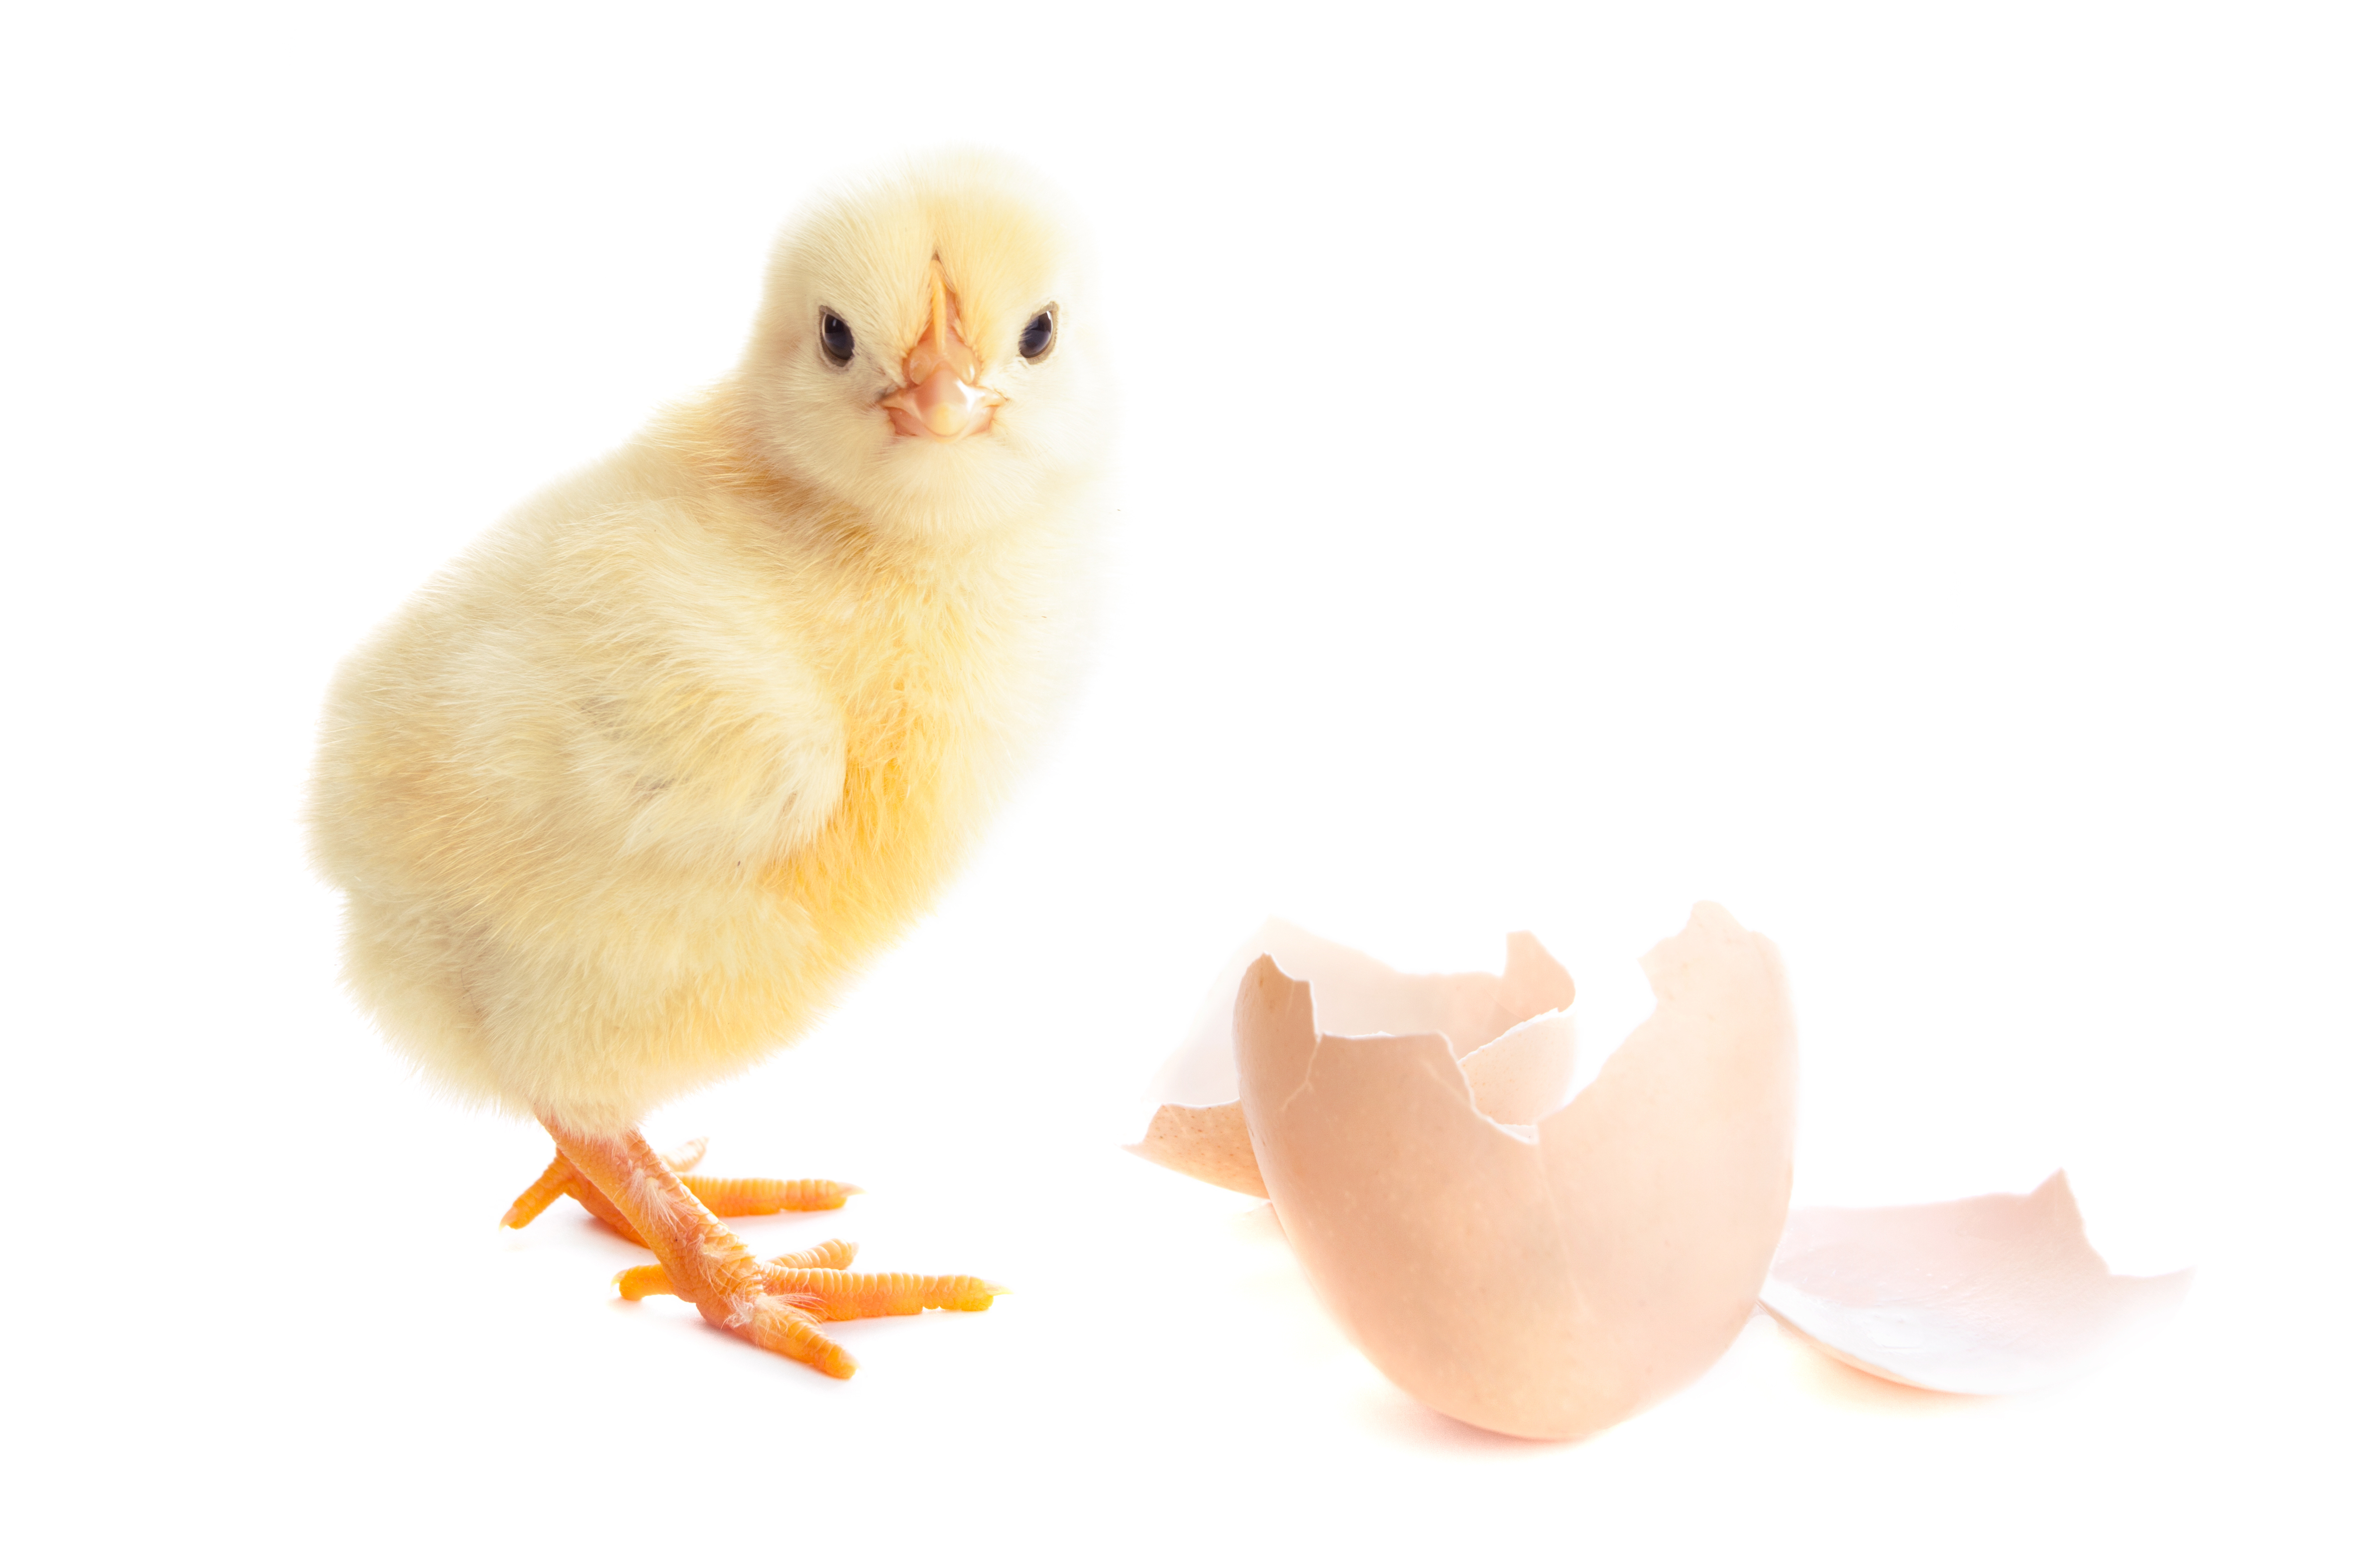 Why are we unable to sex our heritage chicks?